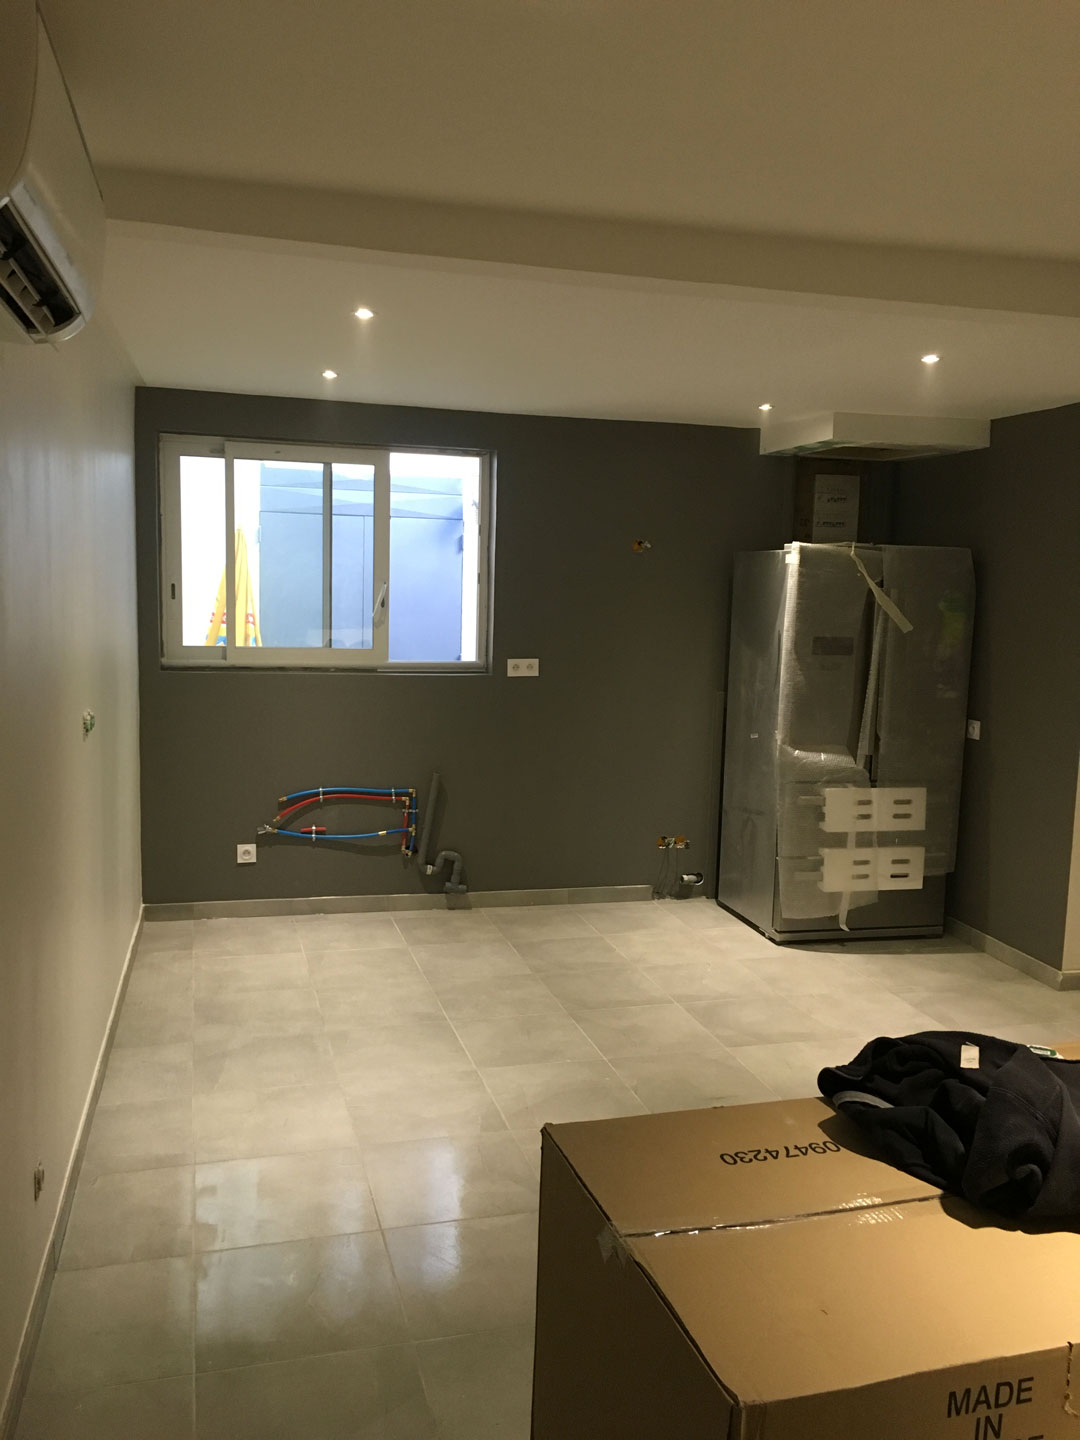 renovation-totale-cuisine-a-grenoble-38100-par-renovisol